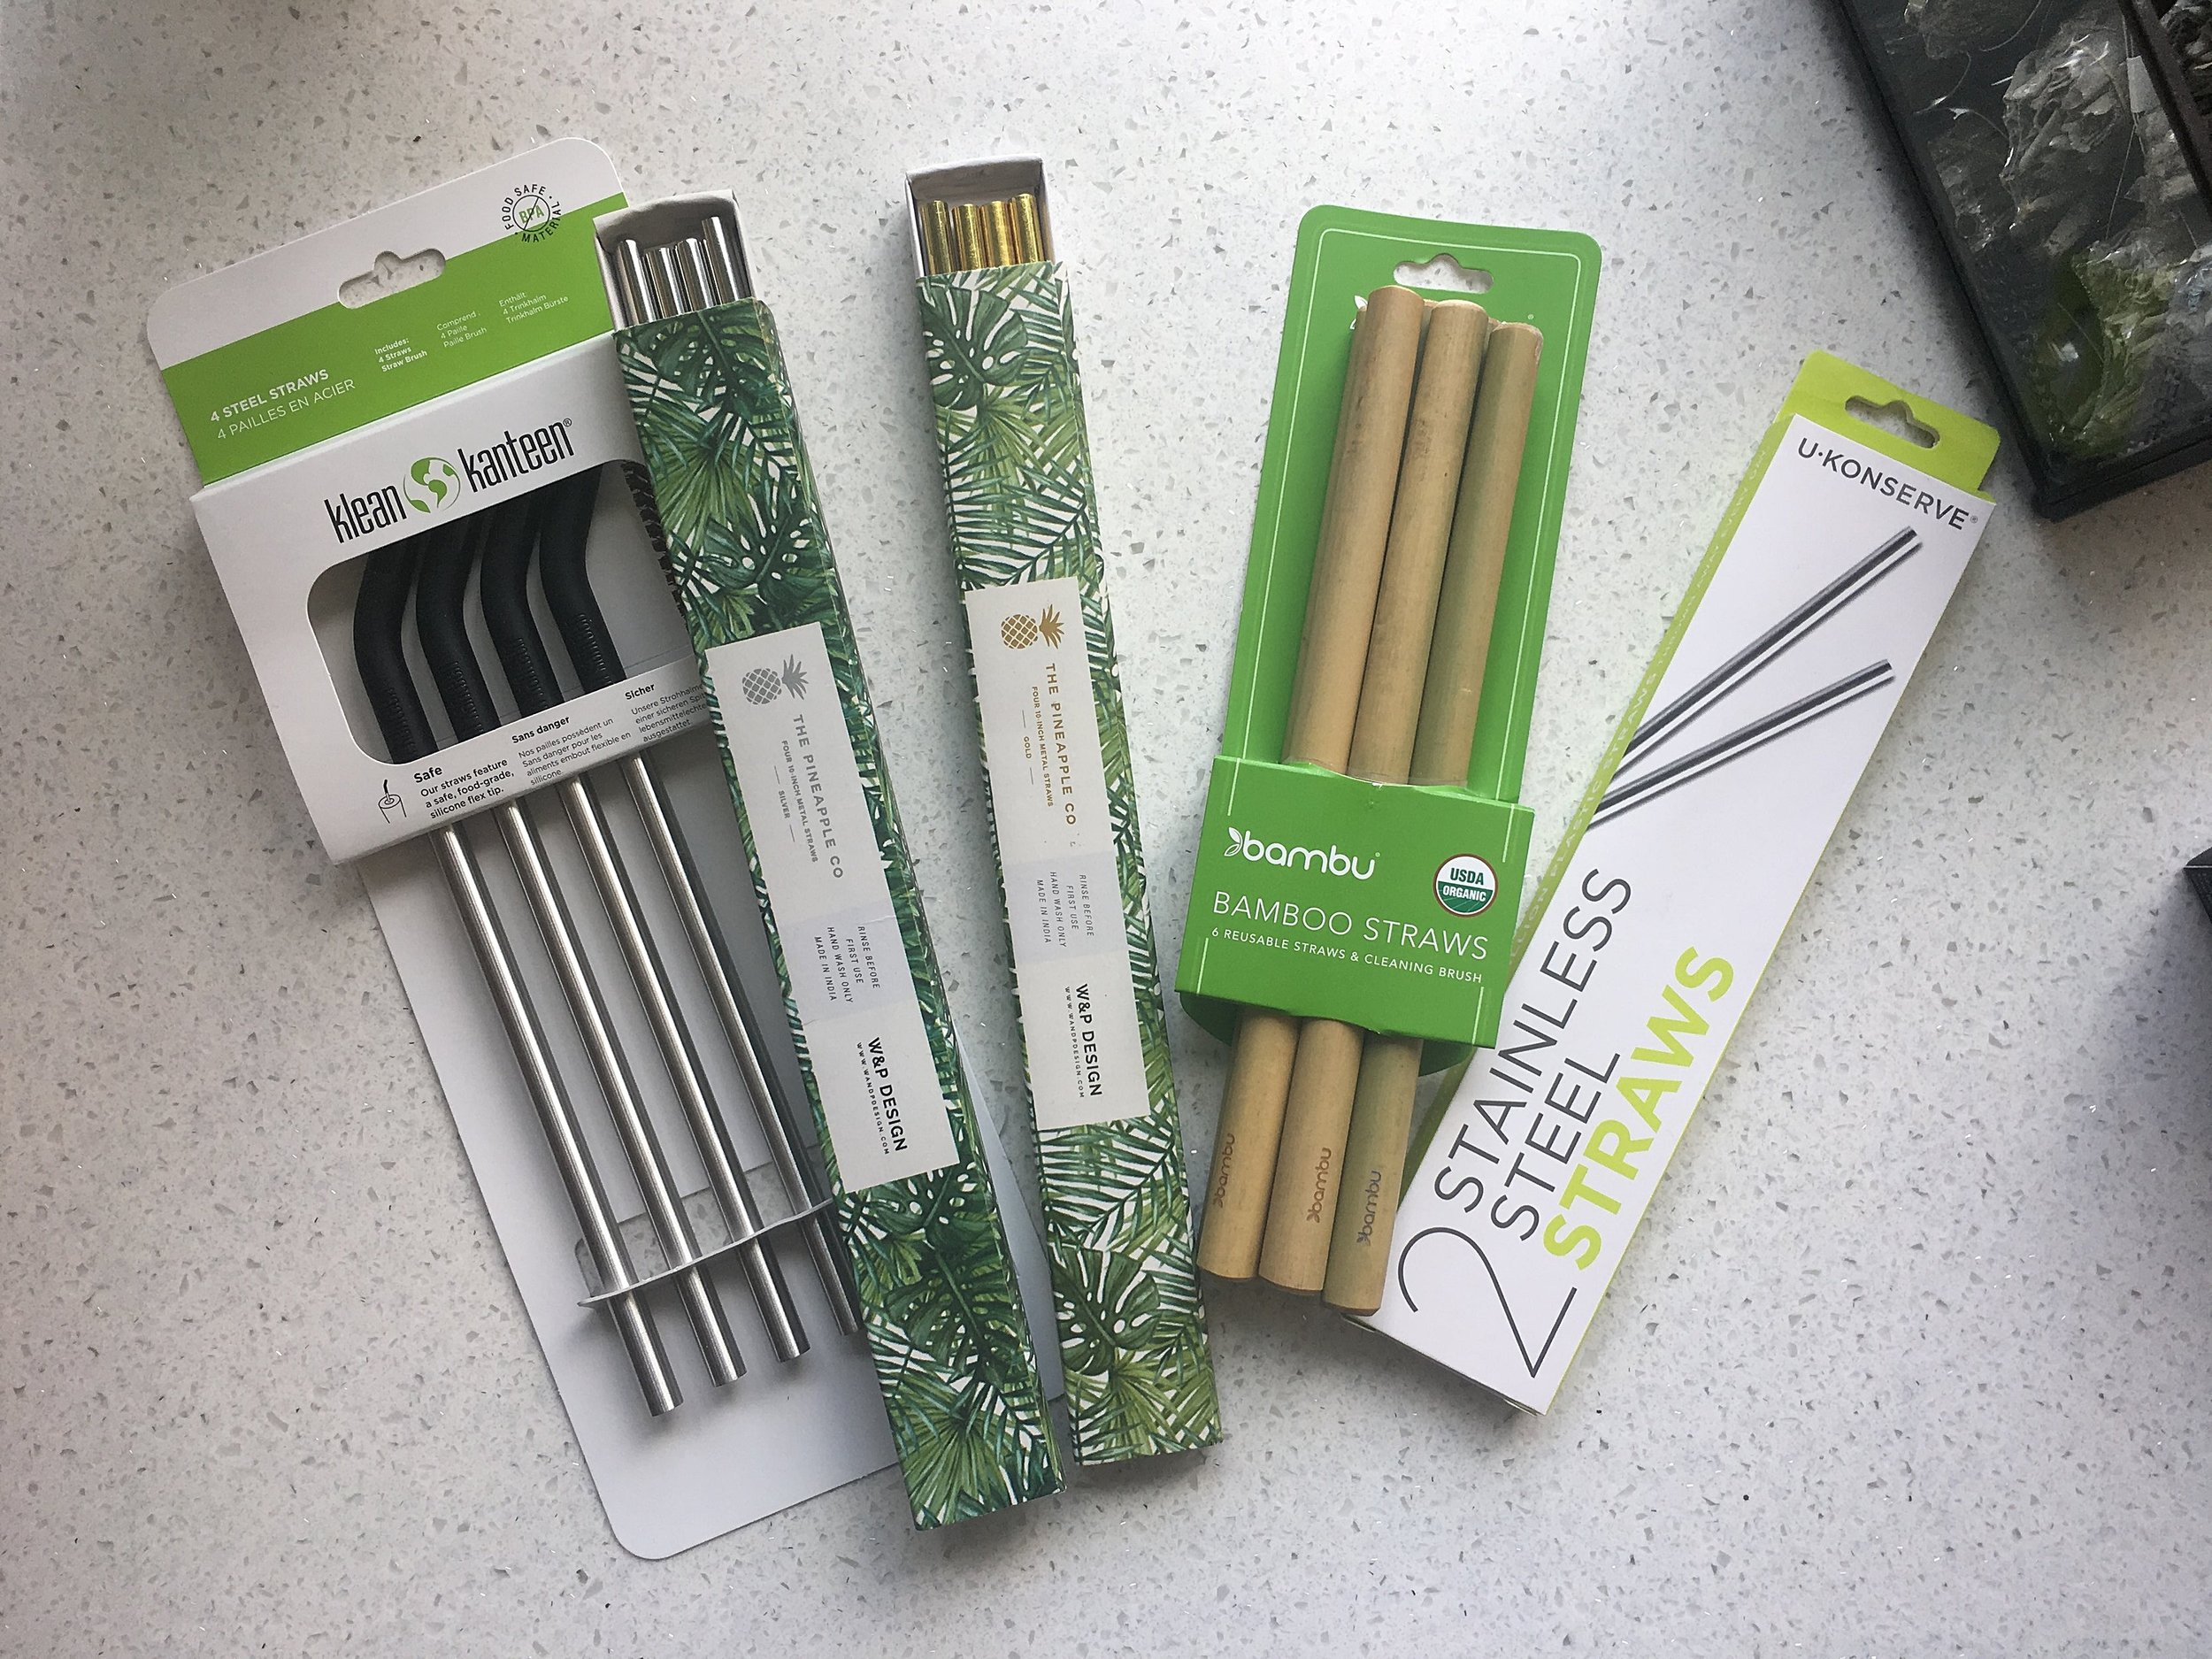 So many fun reusable straw options!